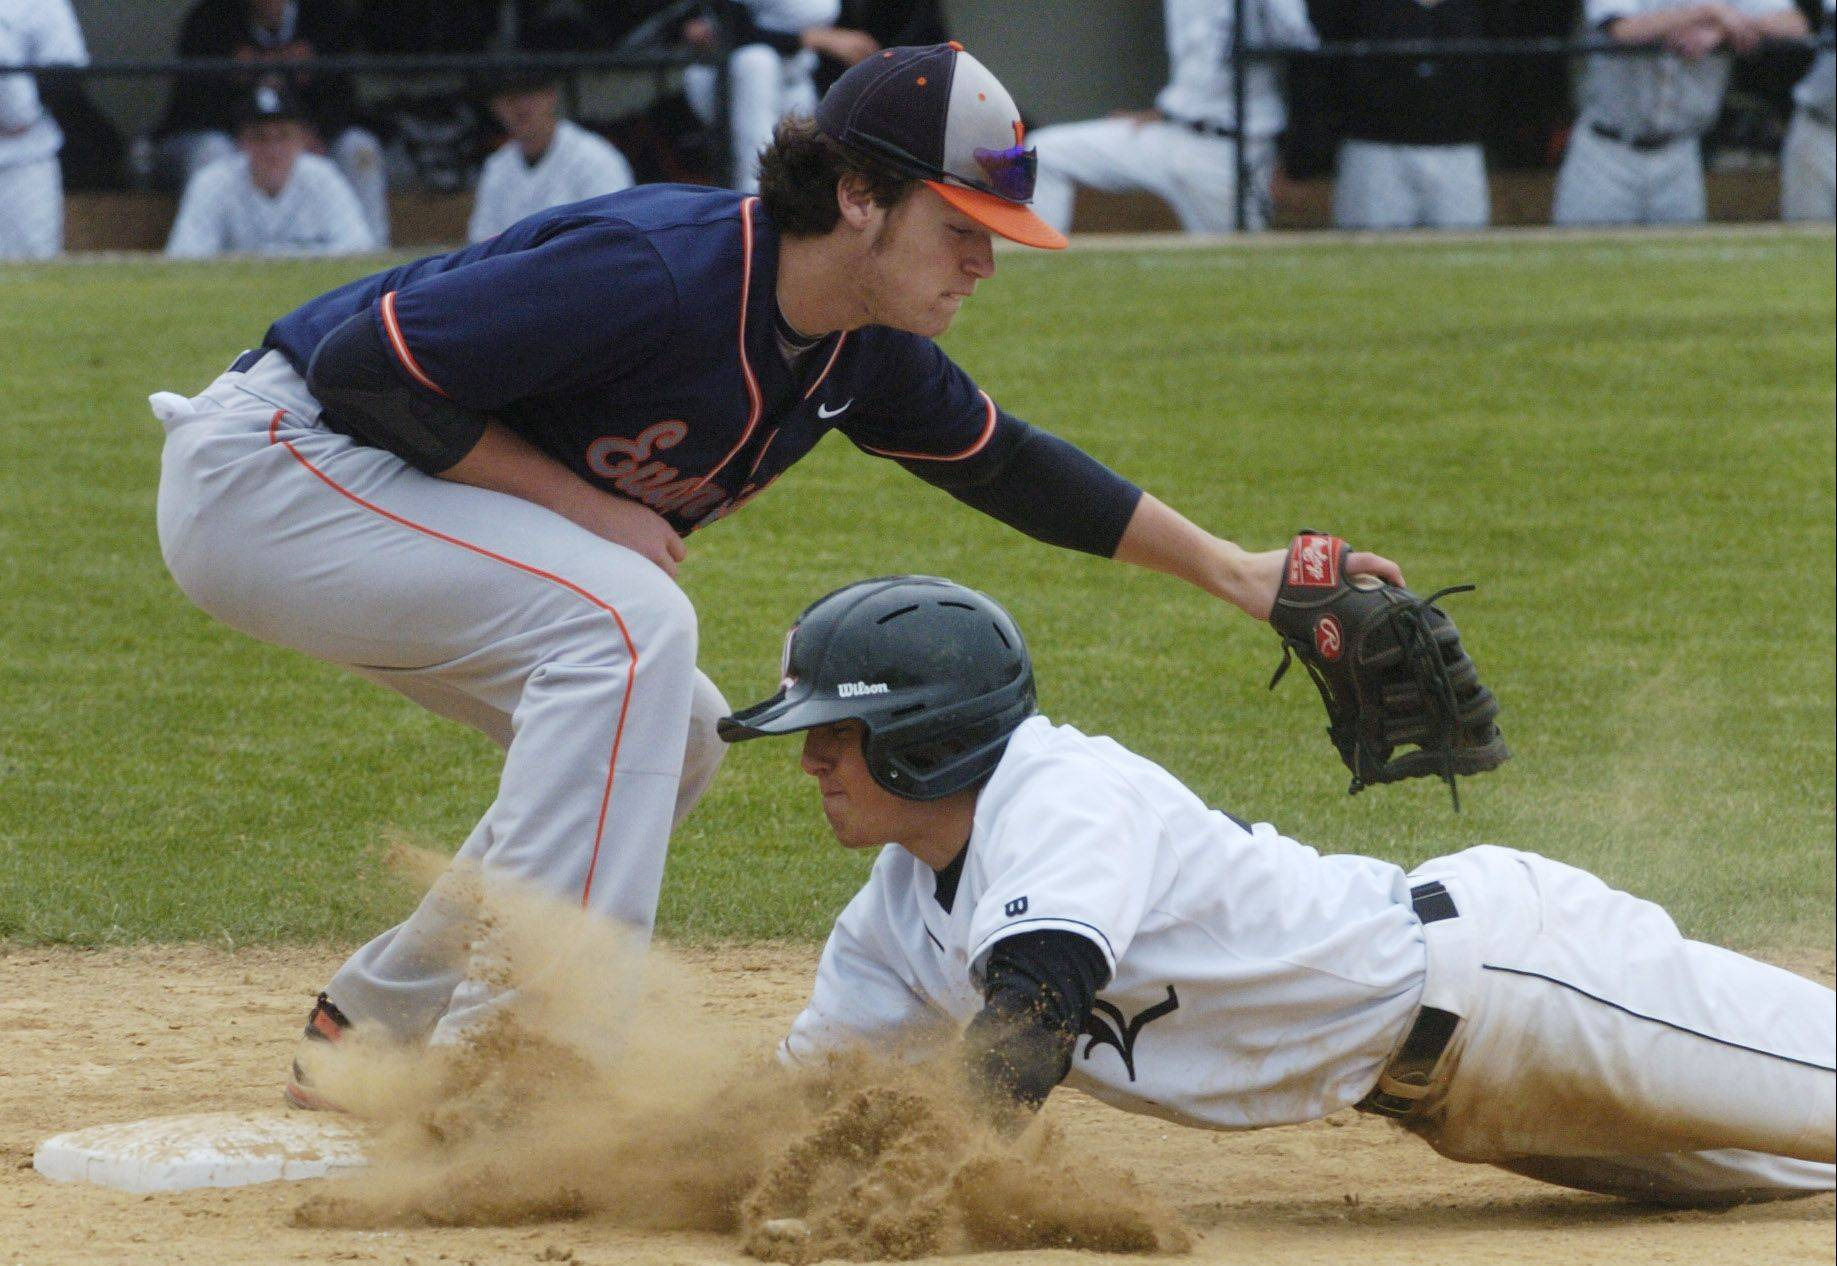 Libertyville's Nick Coutre barely makes it back to first on a pickoff attempt as Evanston's Max Siedlecki applies the tag.